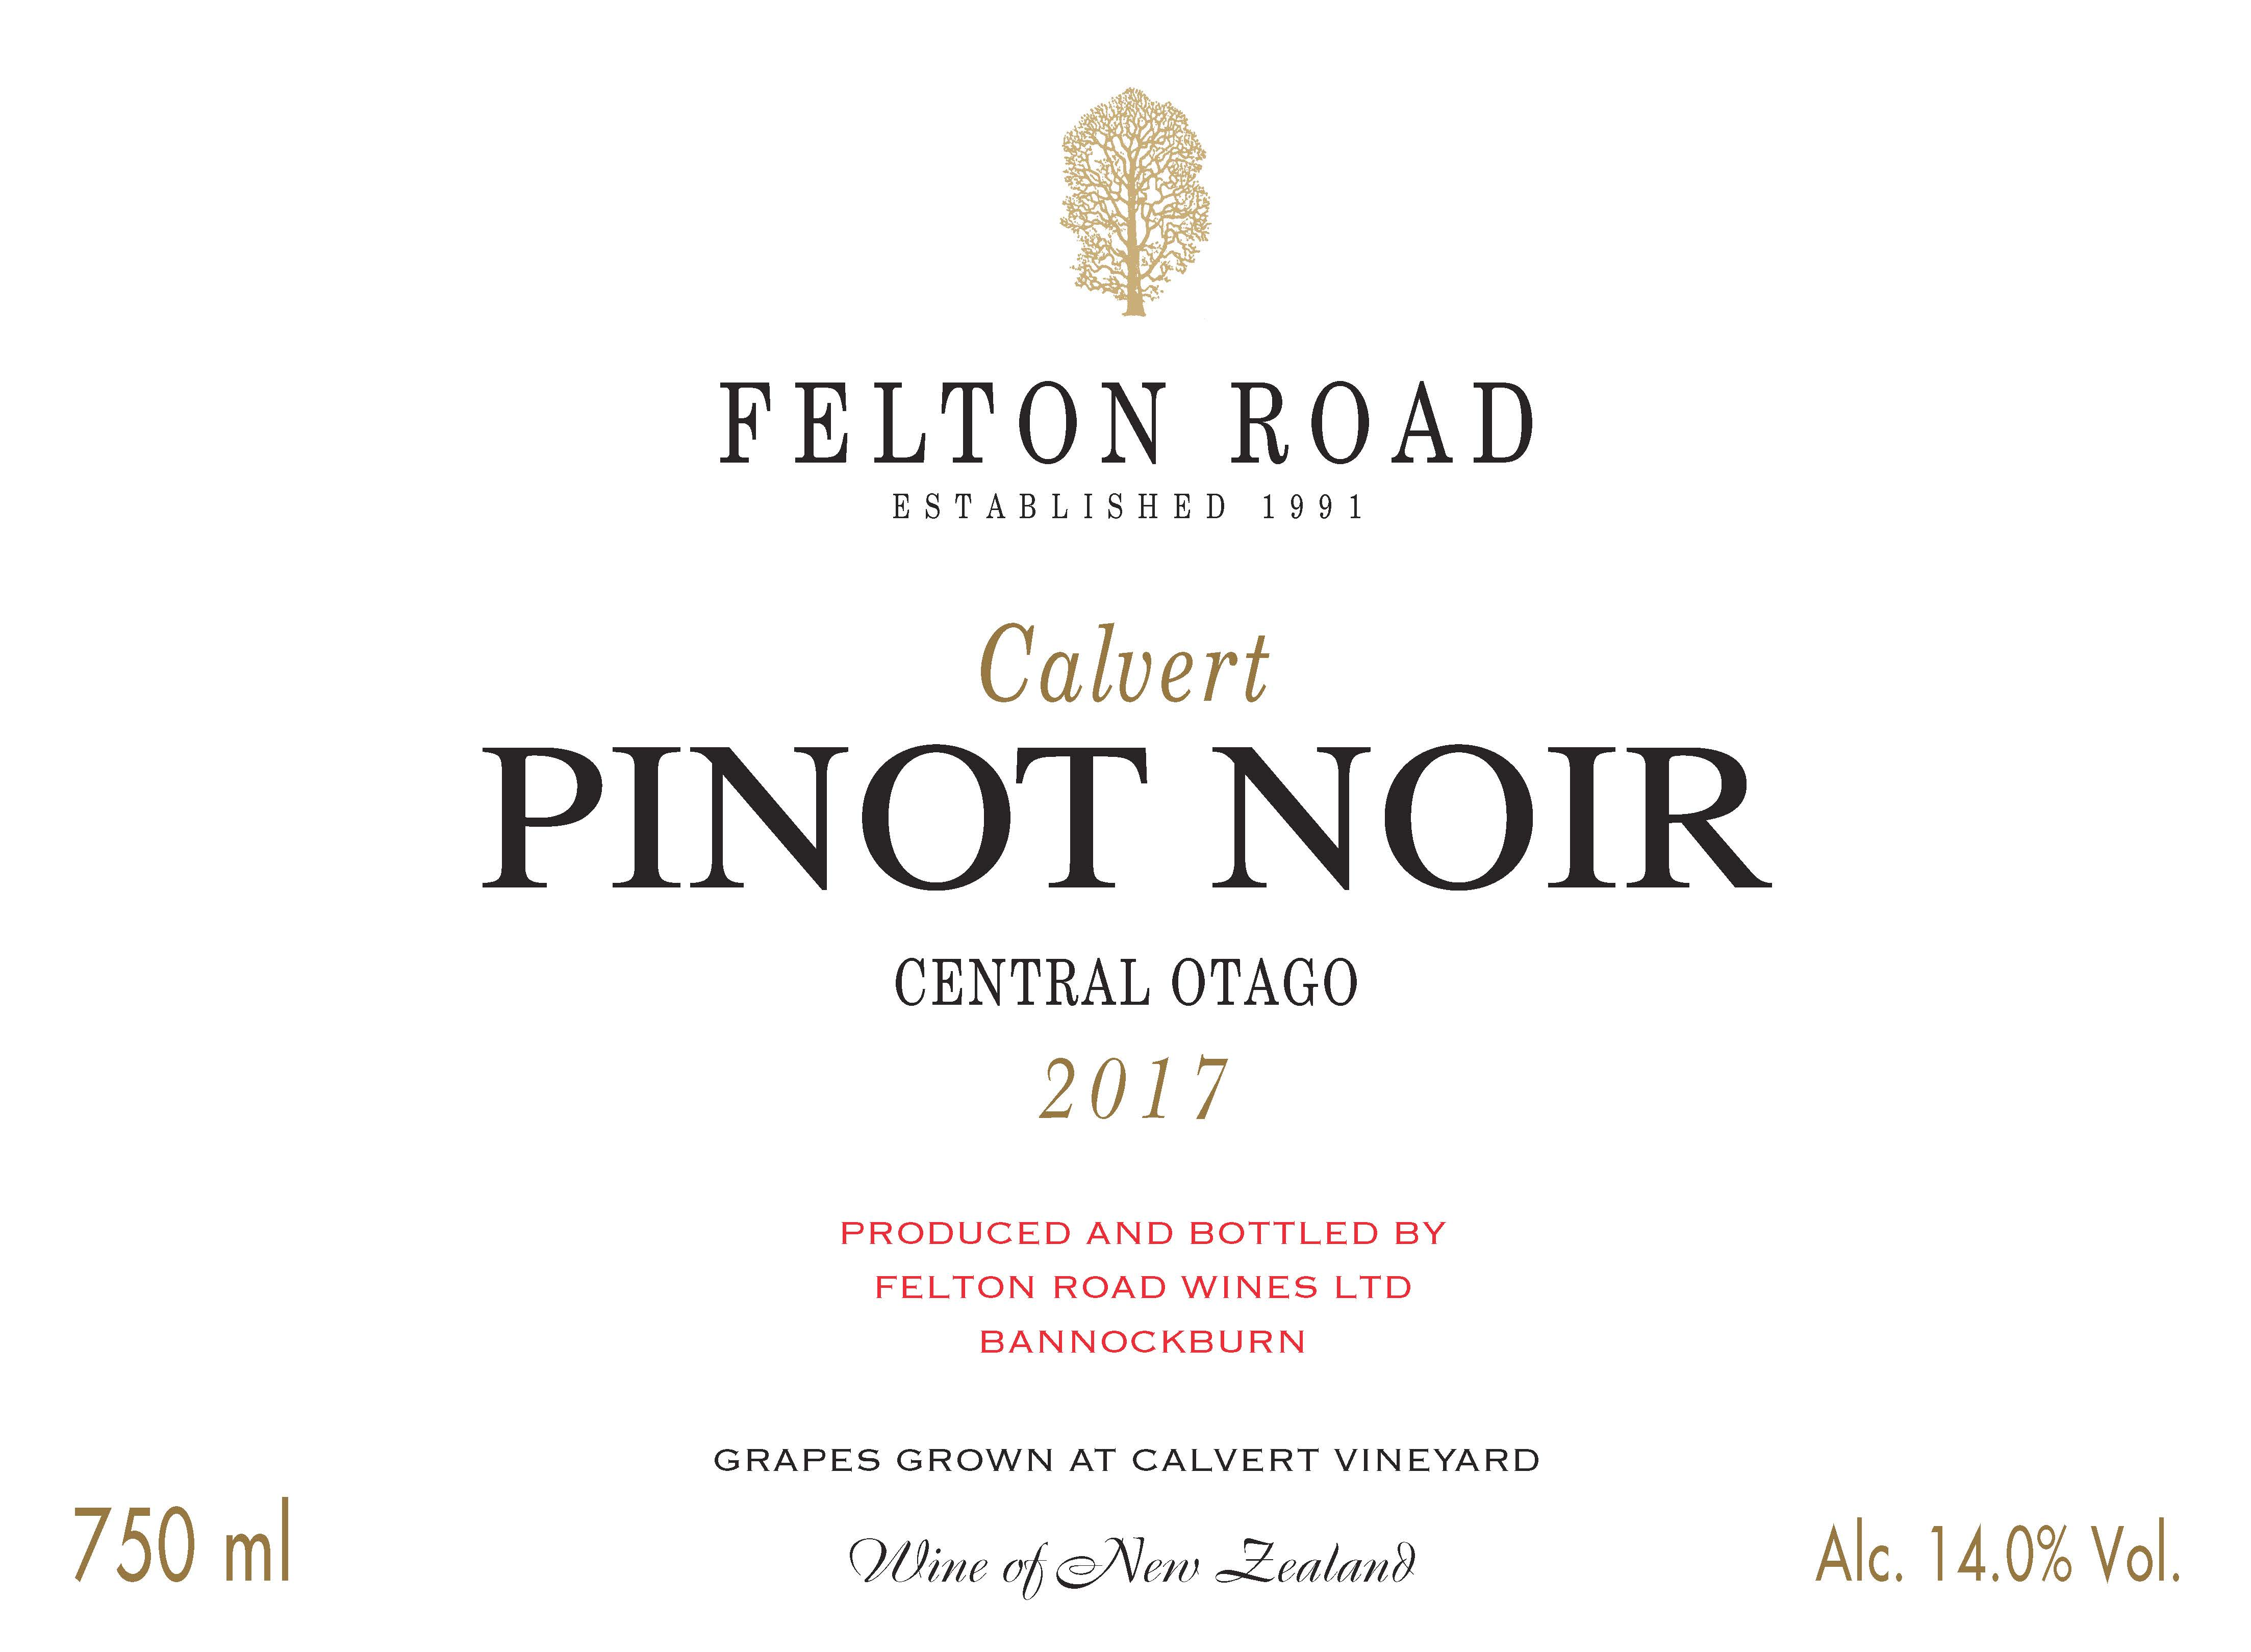 2017 Pinot Noir Calvert - SORRY SOLD OUT image